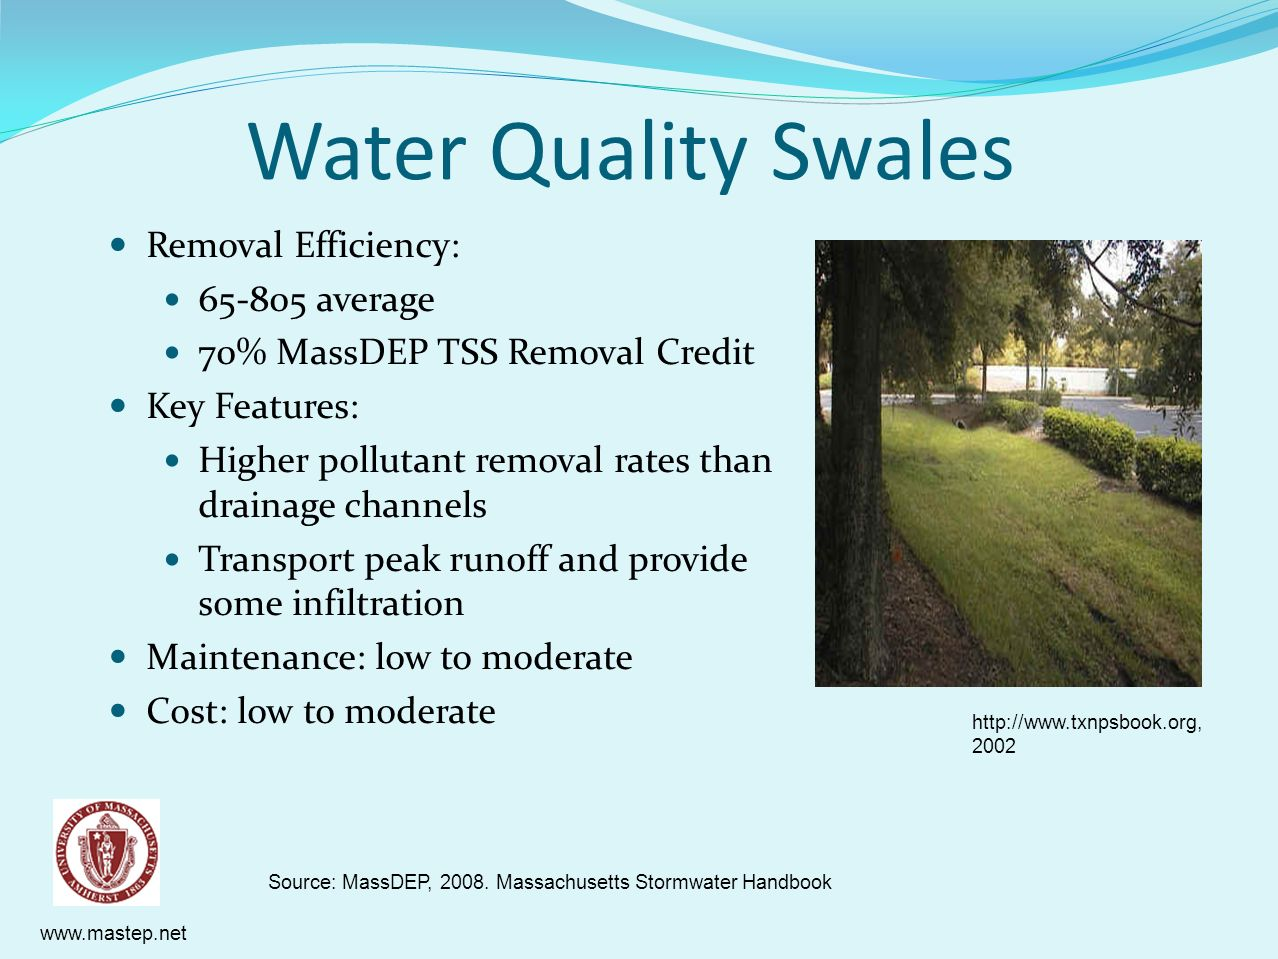 Water Quality Swales Removal Efficiency: 65-805 average